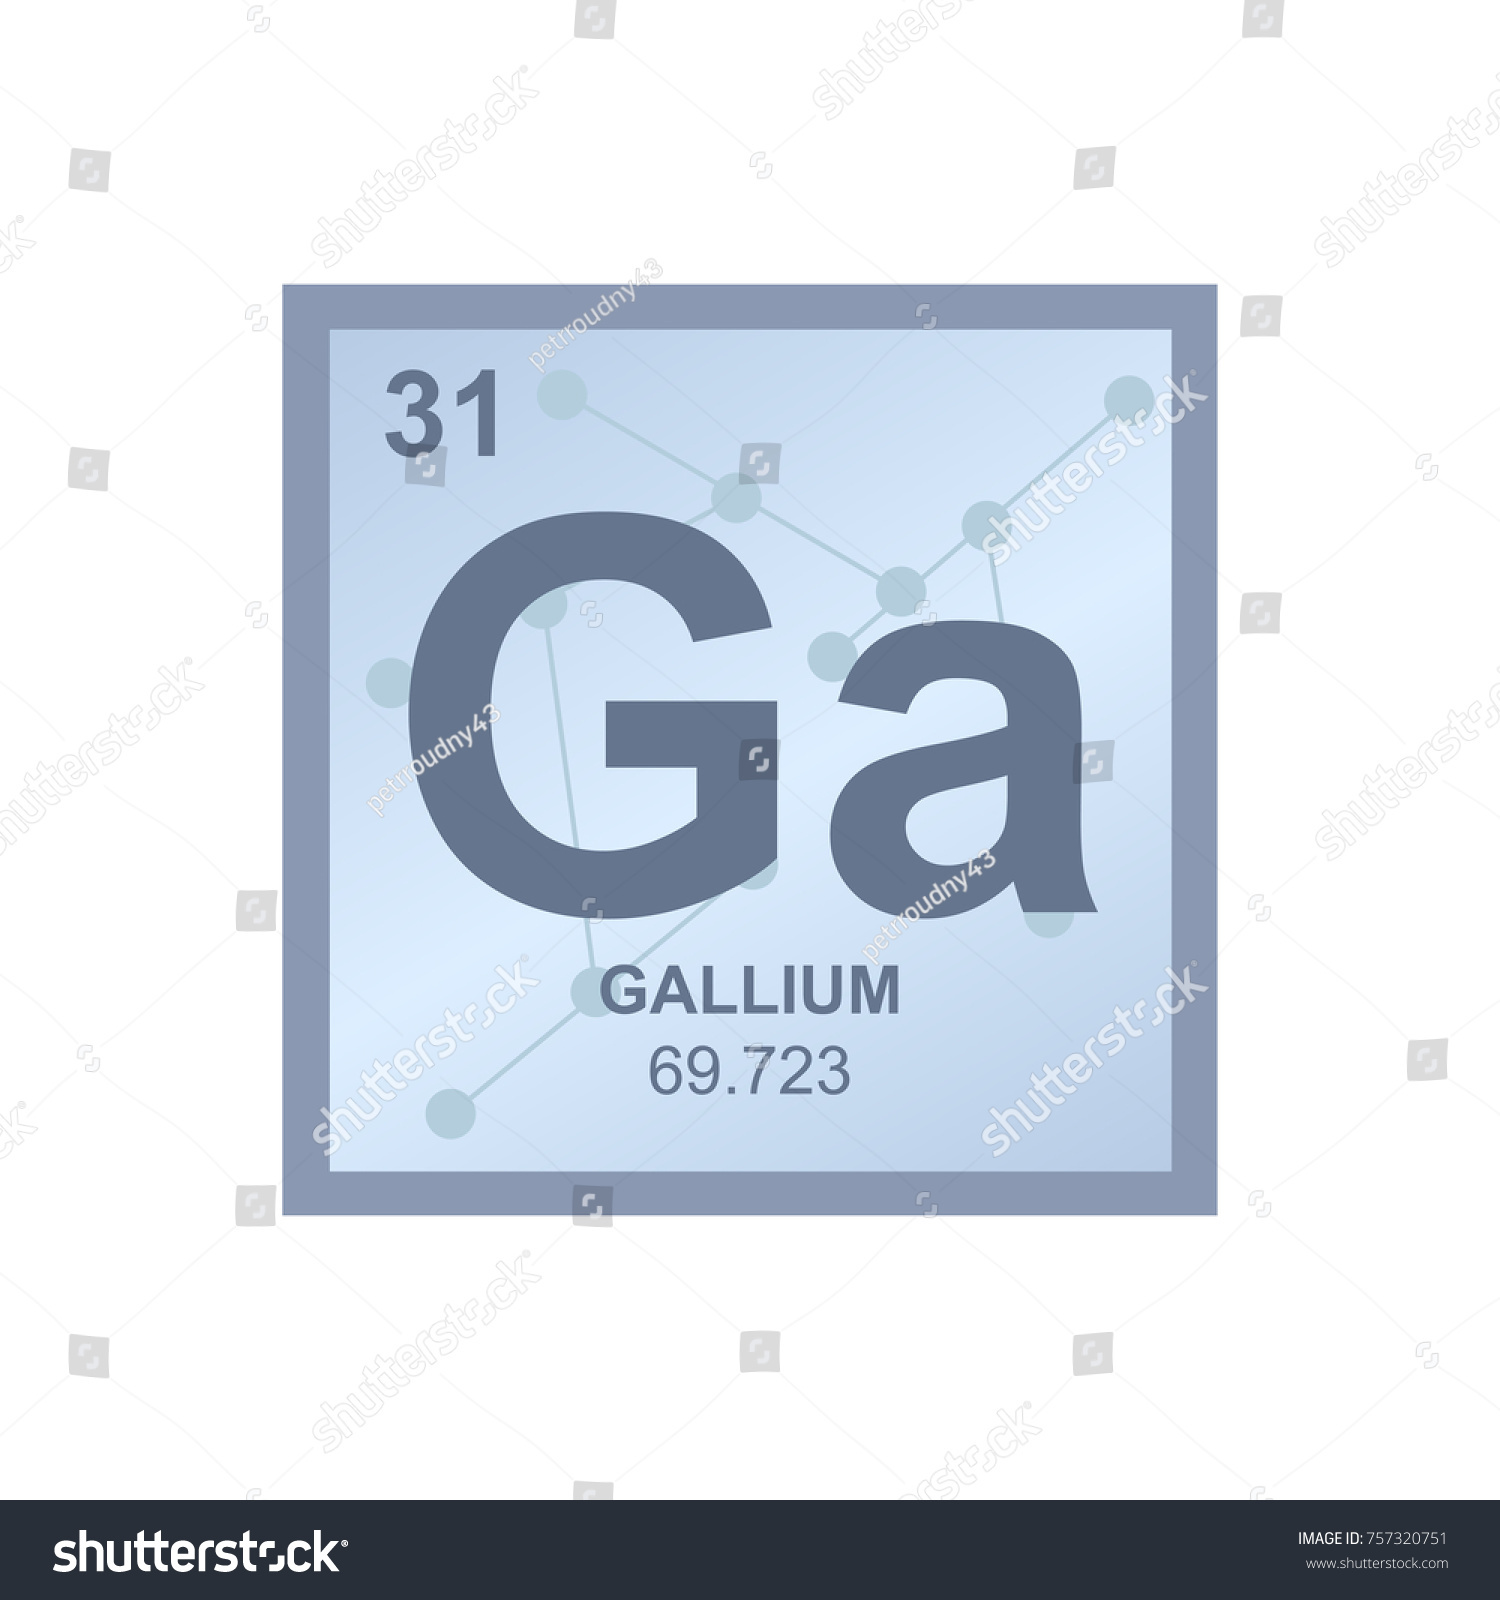 Periodic table of elements alphabetical order by symbol images periodic table of elements alphabetical order by symbol gallery periodic table of elements alphabetical order by gamestrikefo Gallery